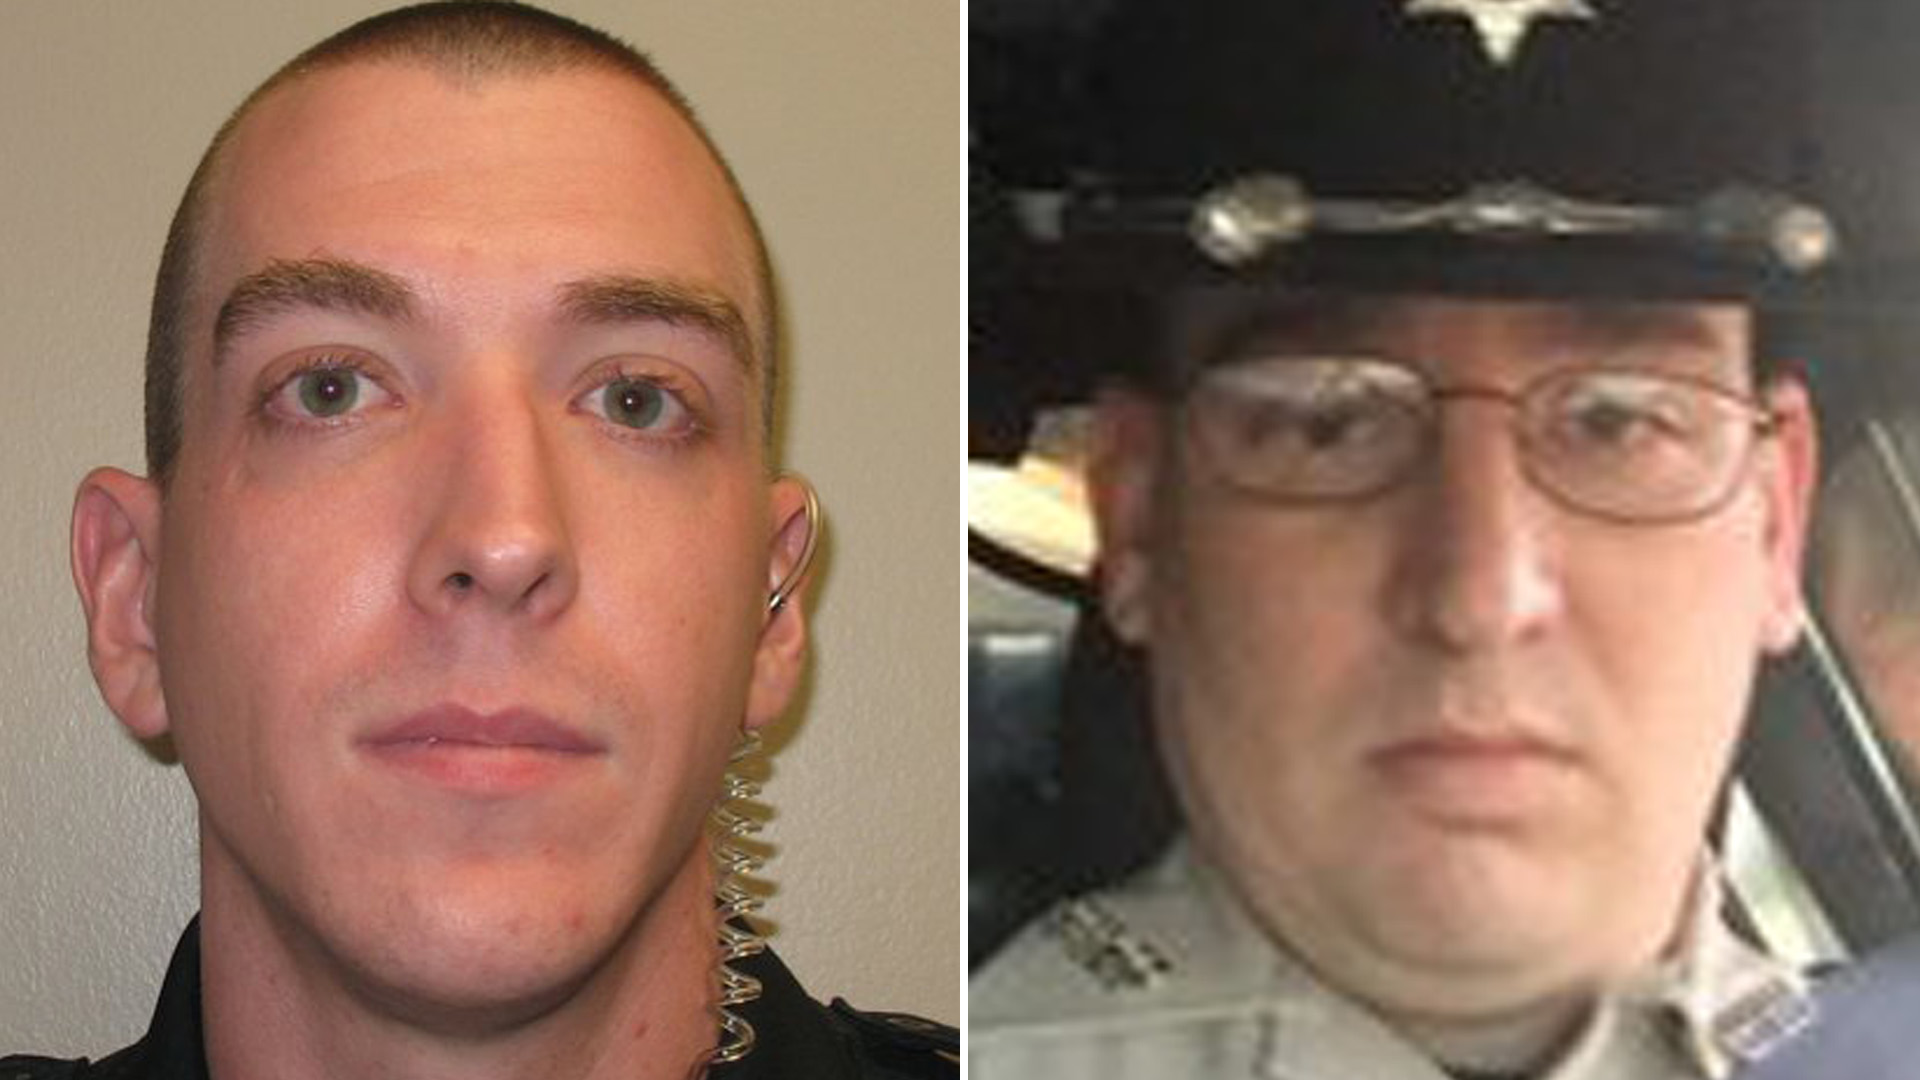 Officers Zack Moak and James White are seen in images obtained by CNN from the Mississippi Bureau of Investigations on Sept. 29, 2018.